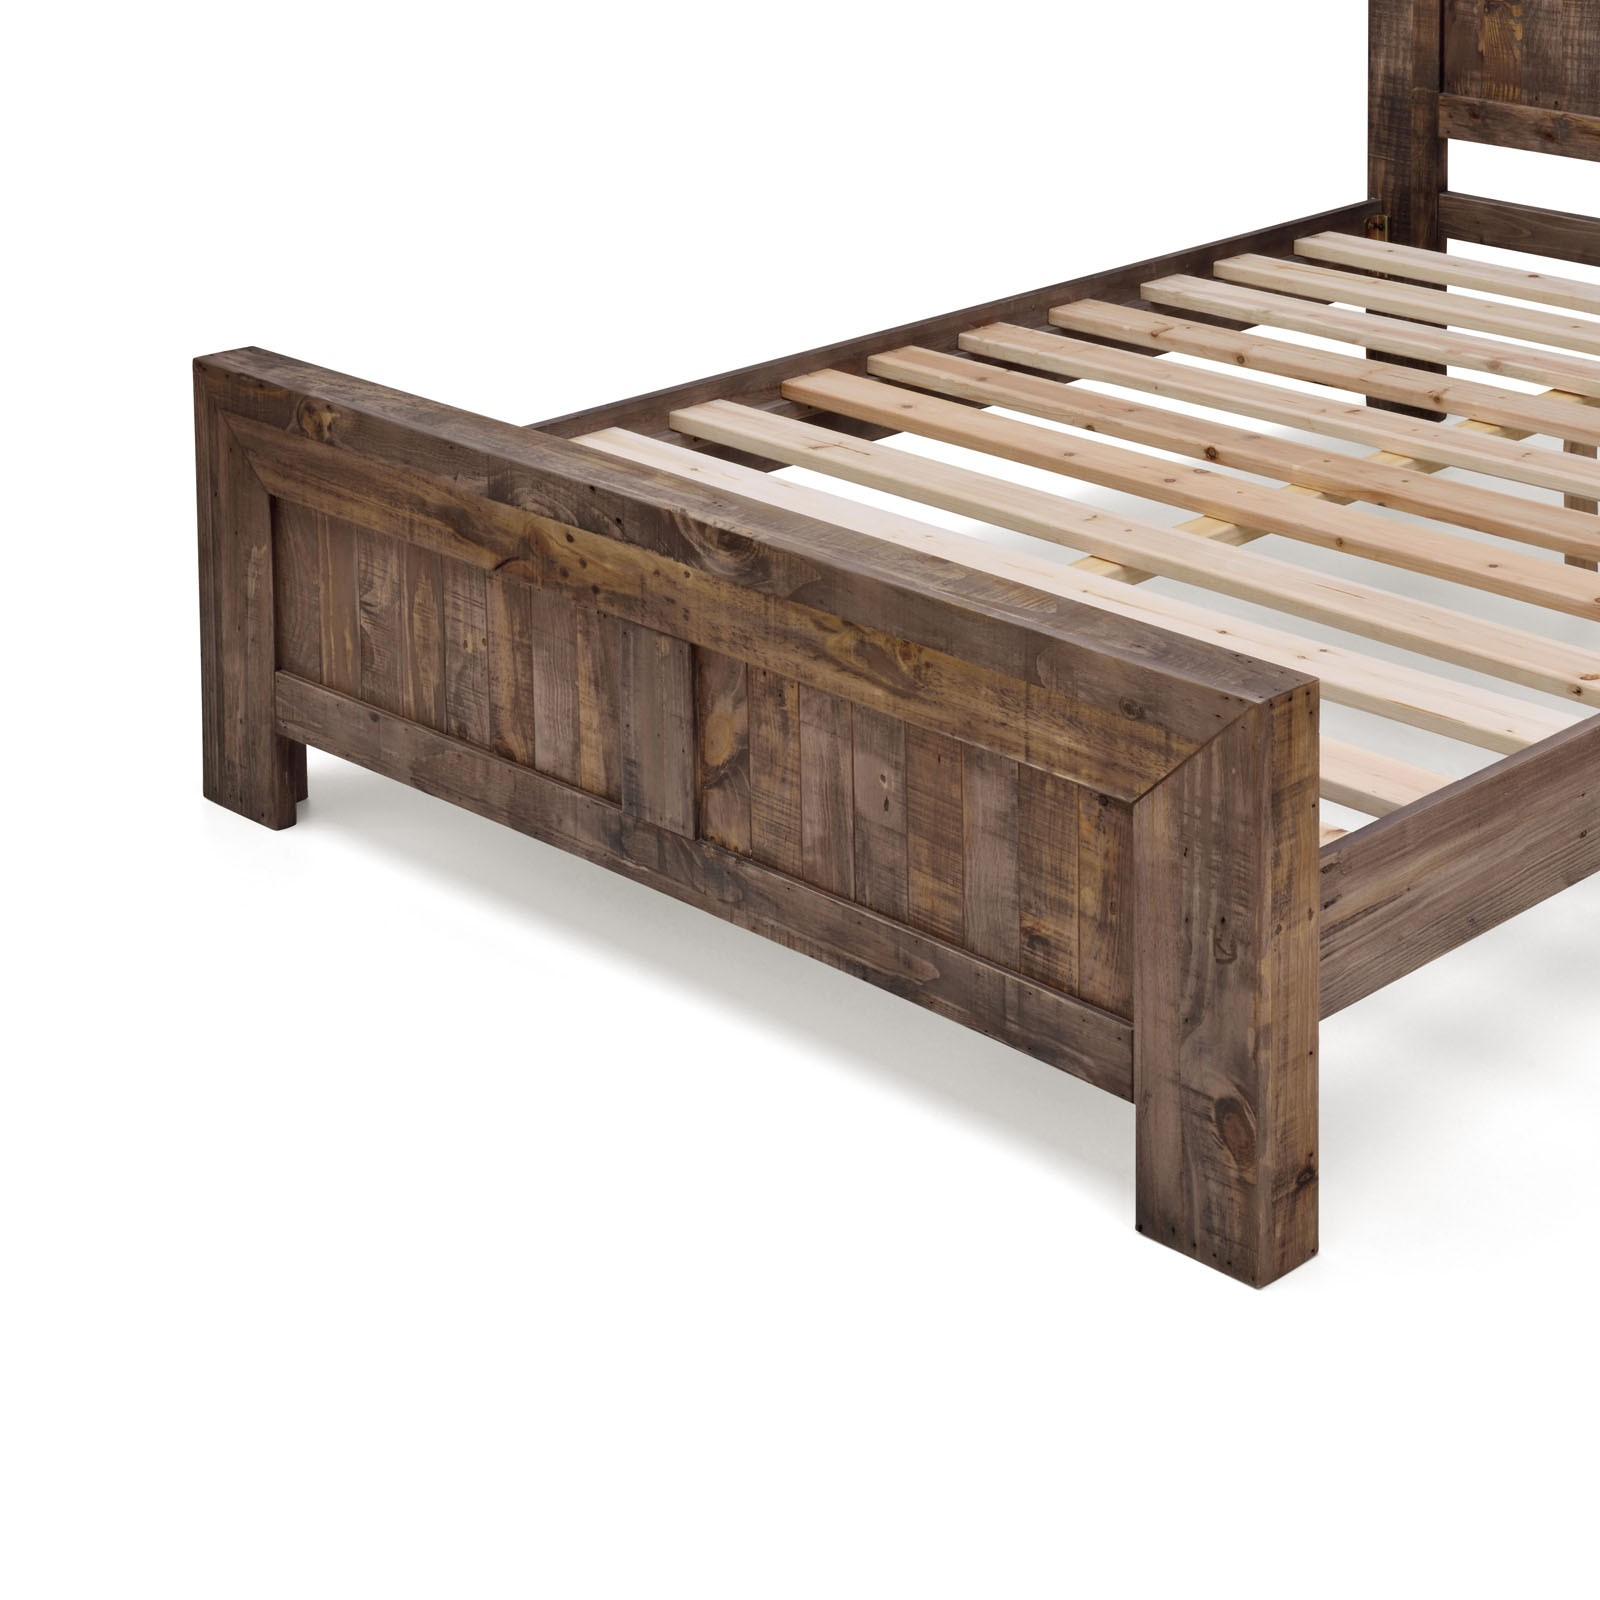 boston brand new recycled solid pine rustic timber double size bed frame - Double Size Bed Frame